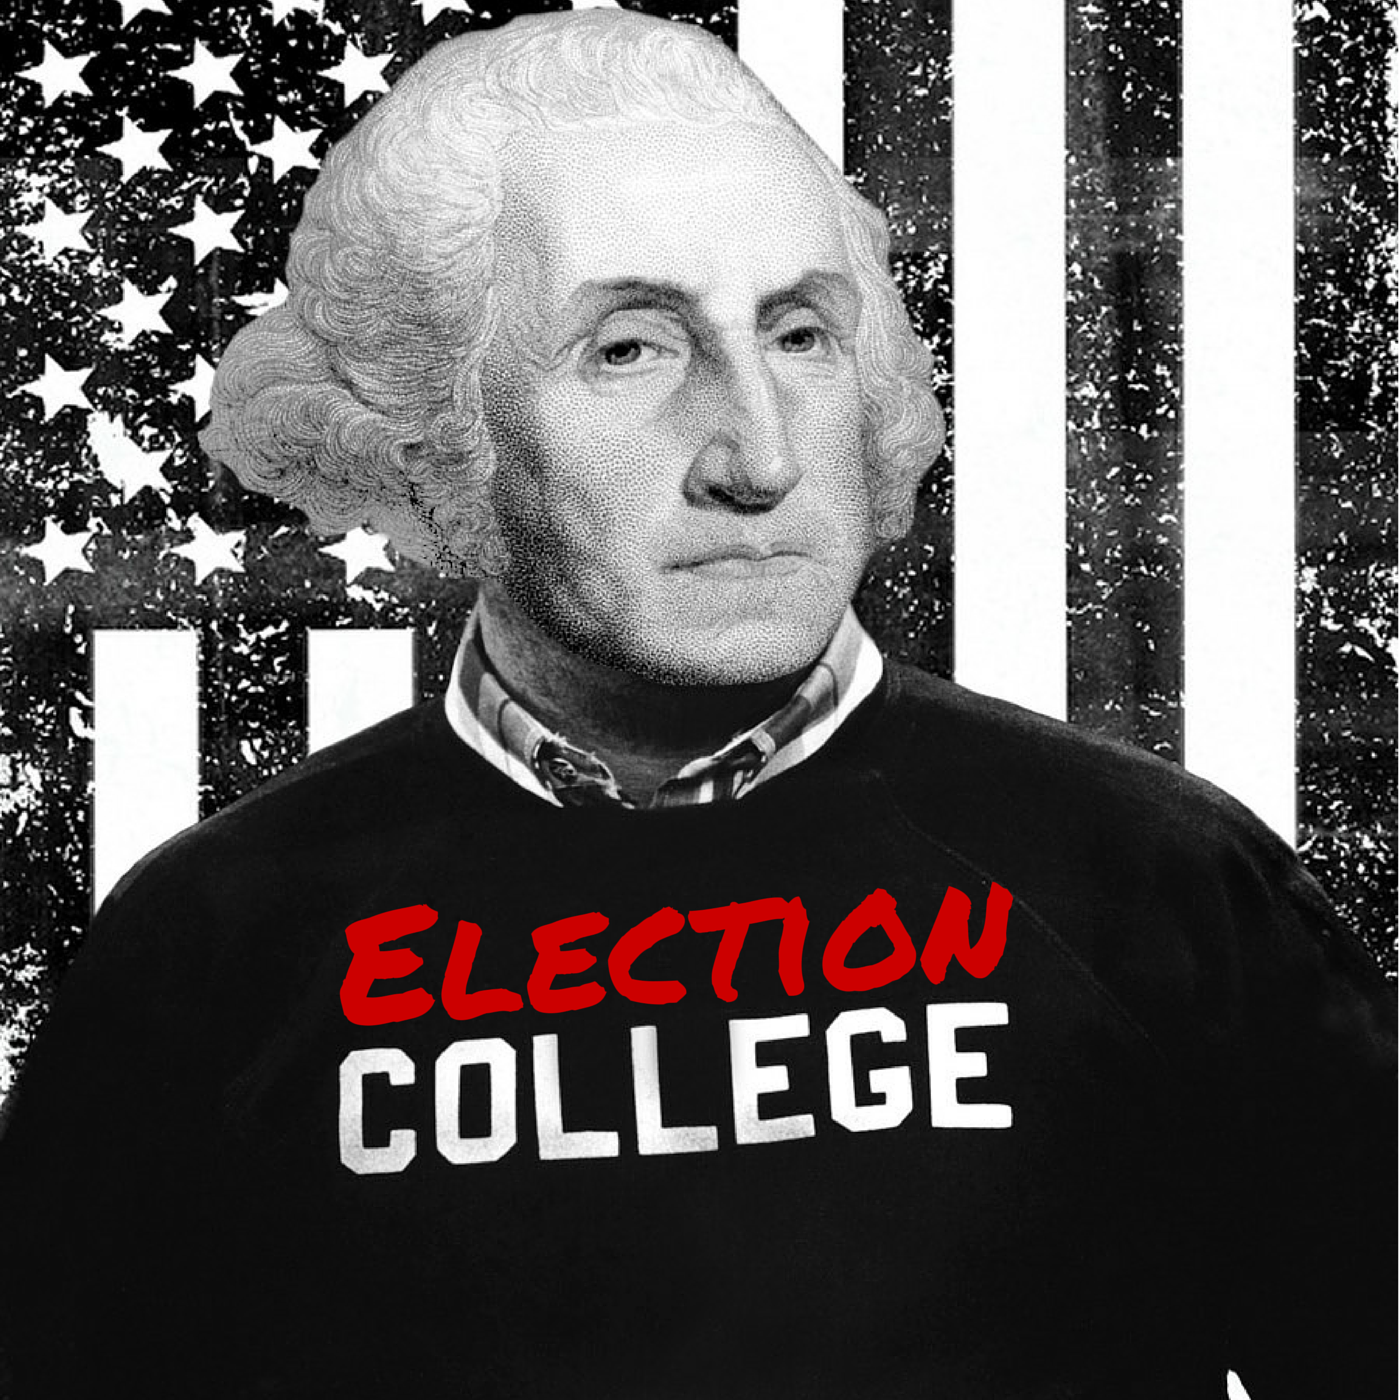 George Washington - Part 1 | Episode #106 | Election College: United States Presidential Election History